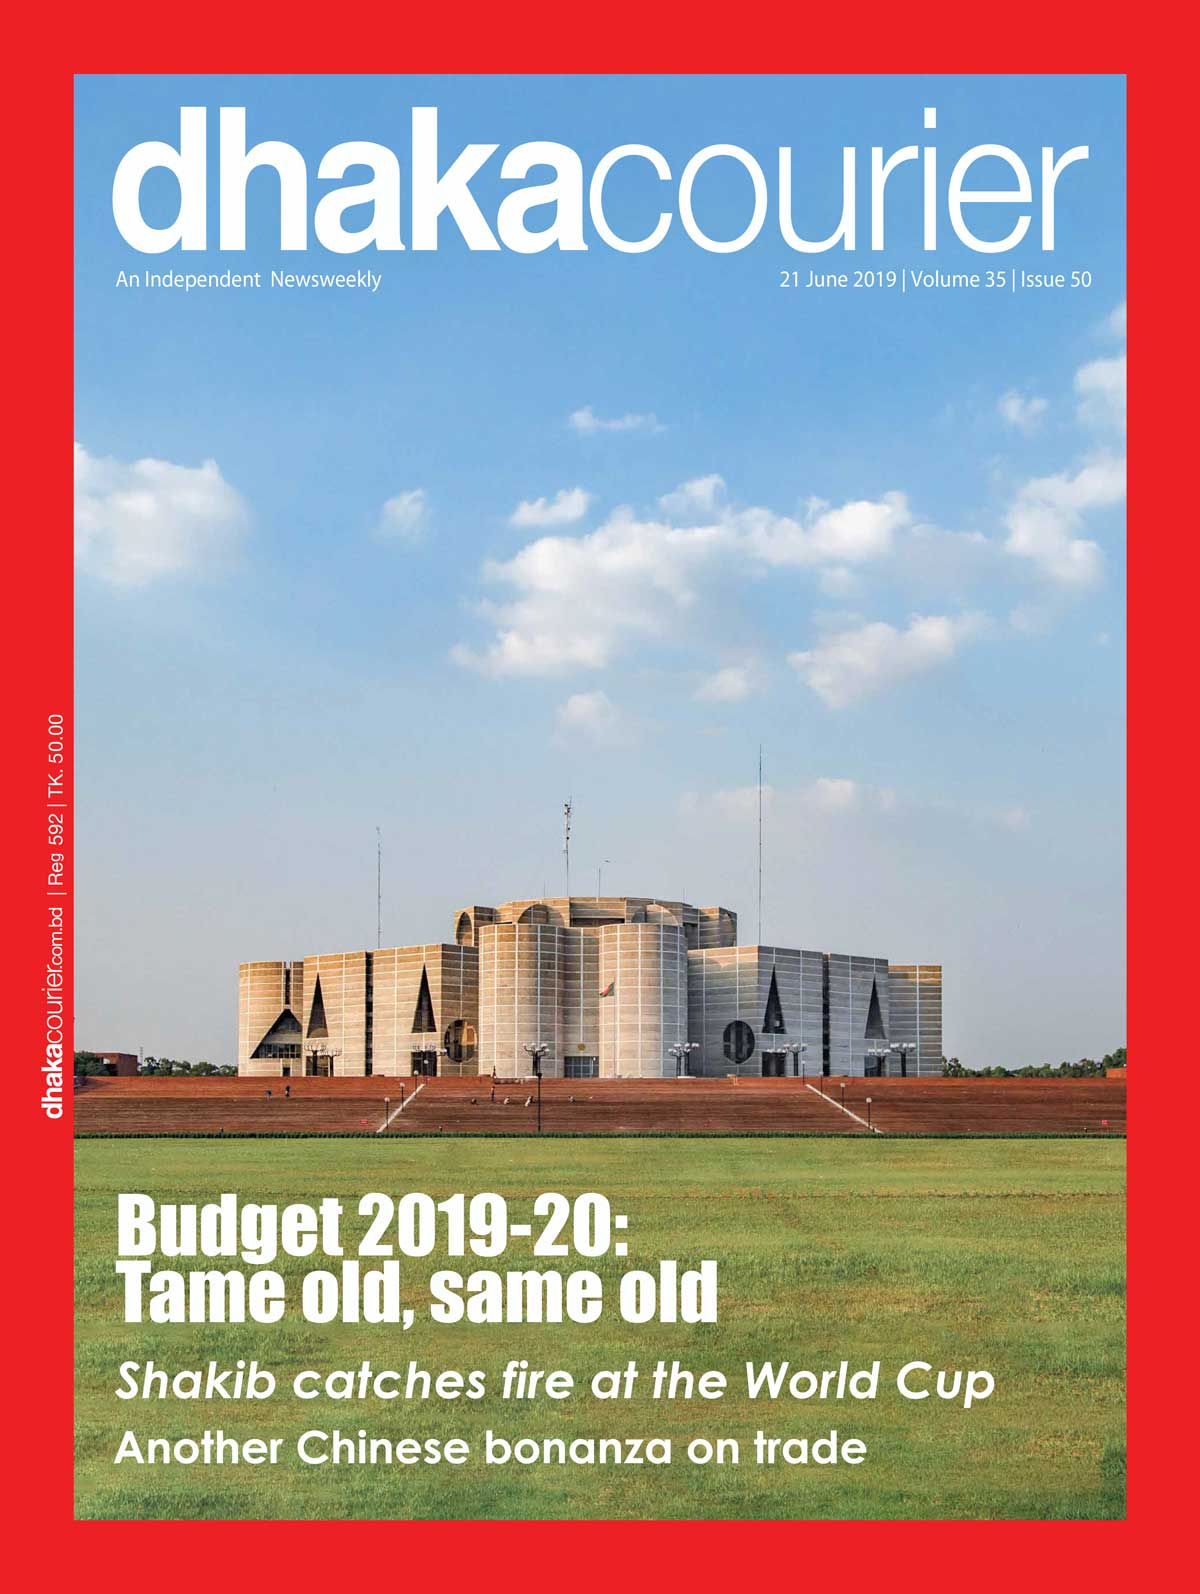 DhakaCourier Vol 35 Issue 50